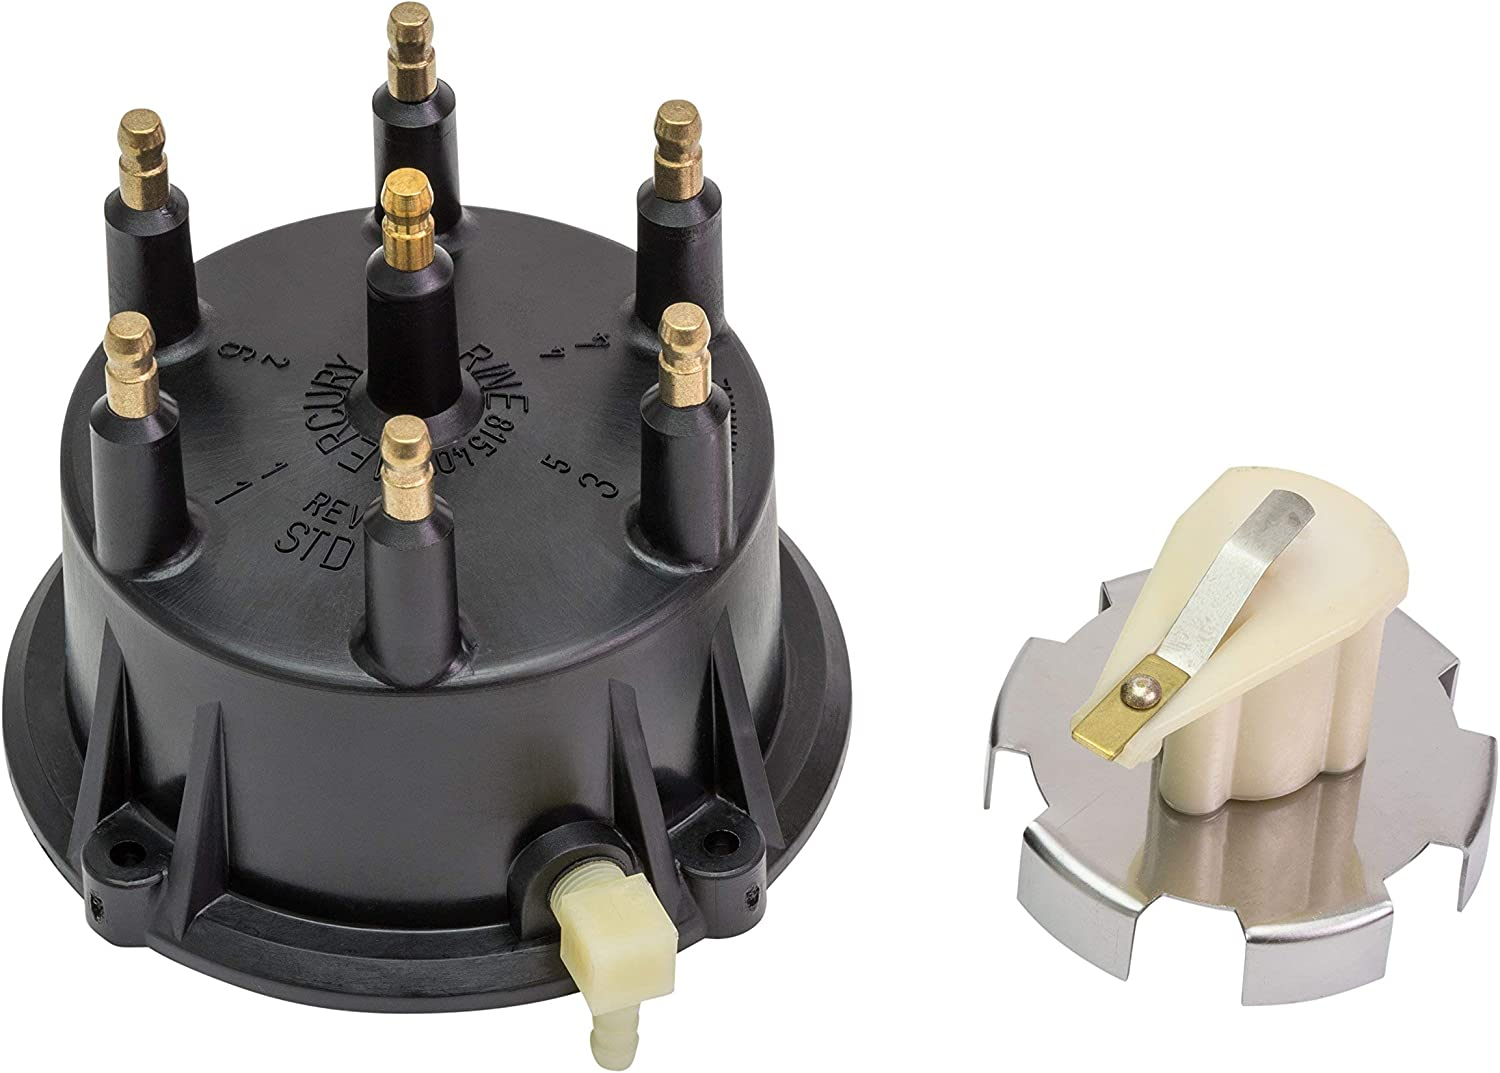 Thunderbolt for V-6 and V-8 MerCruiser Stern Drive and Inboard Engines Made by General Motors with Thunderbolt IV and V Ignition System Quicksilver Ignition Coil 8M0079202